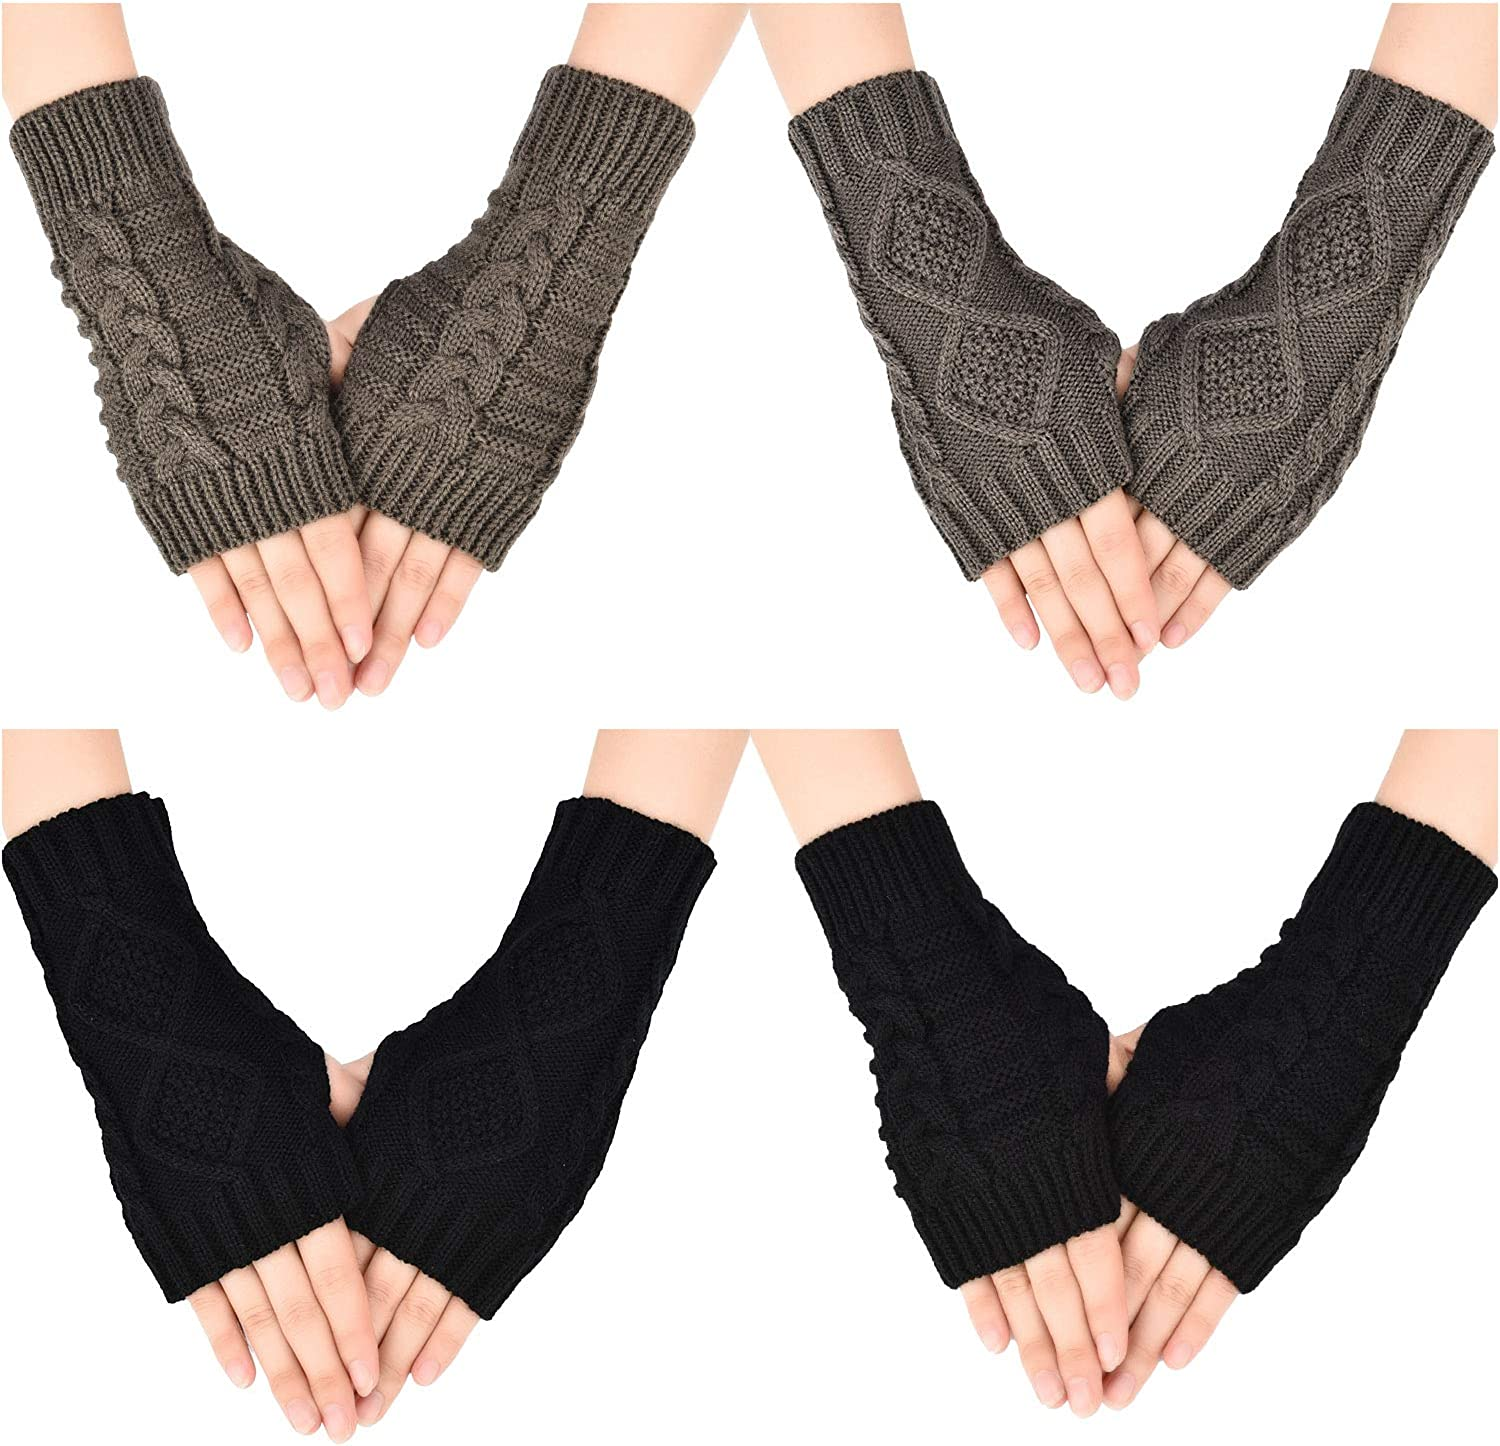 Tatuo 4 Pairs Women's Fingerless Gloves Stretchy Knitted Gloves Thumb Hole Mittens Crochet Wrist Length Warmers